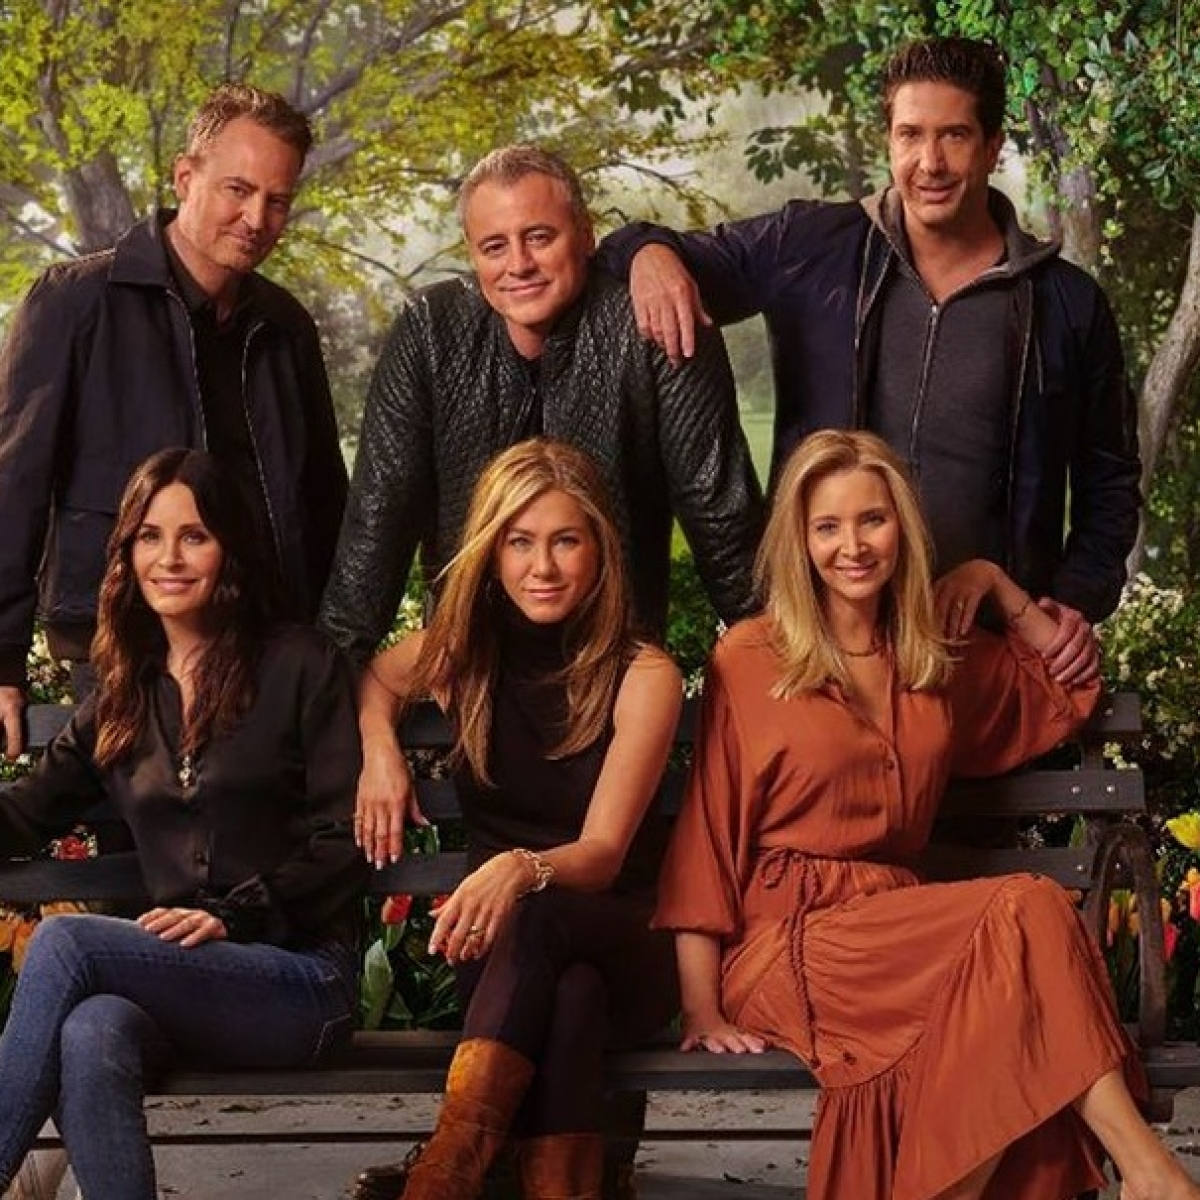 Walk down memory lane: Friends - The Reunion will be nostalgic fare for the fans of the '90s series